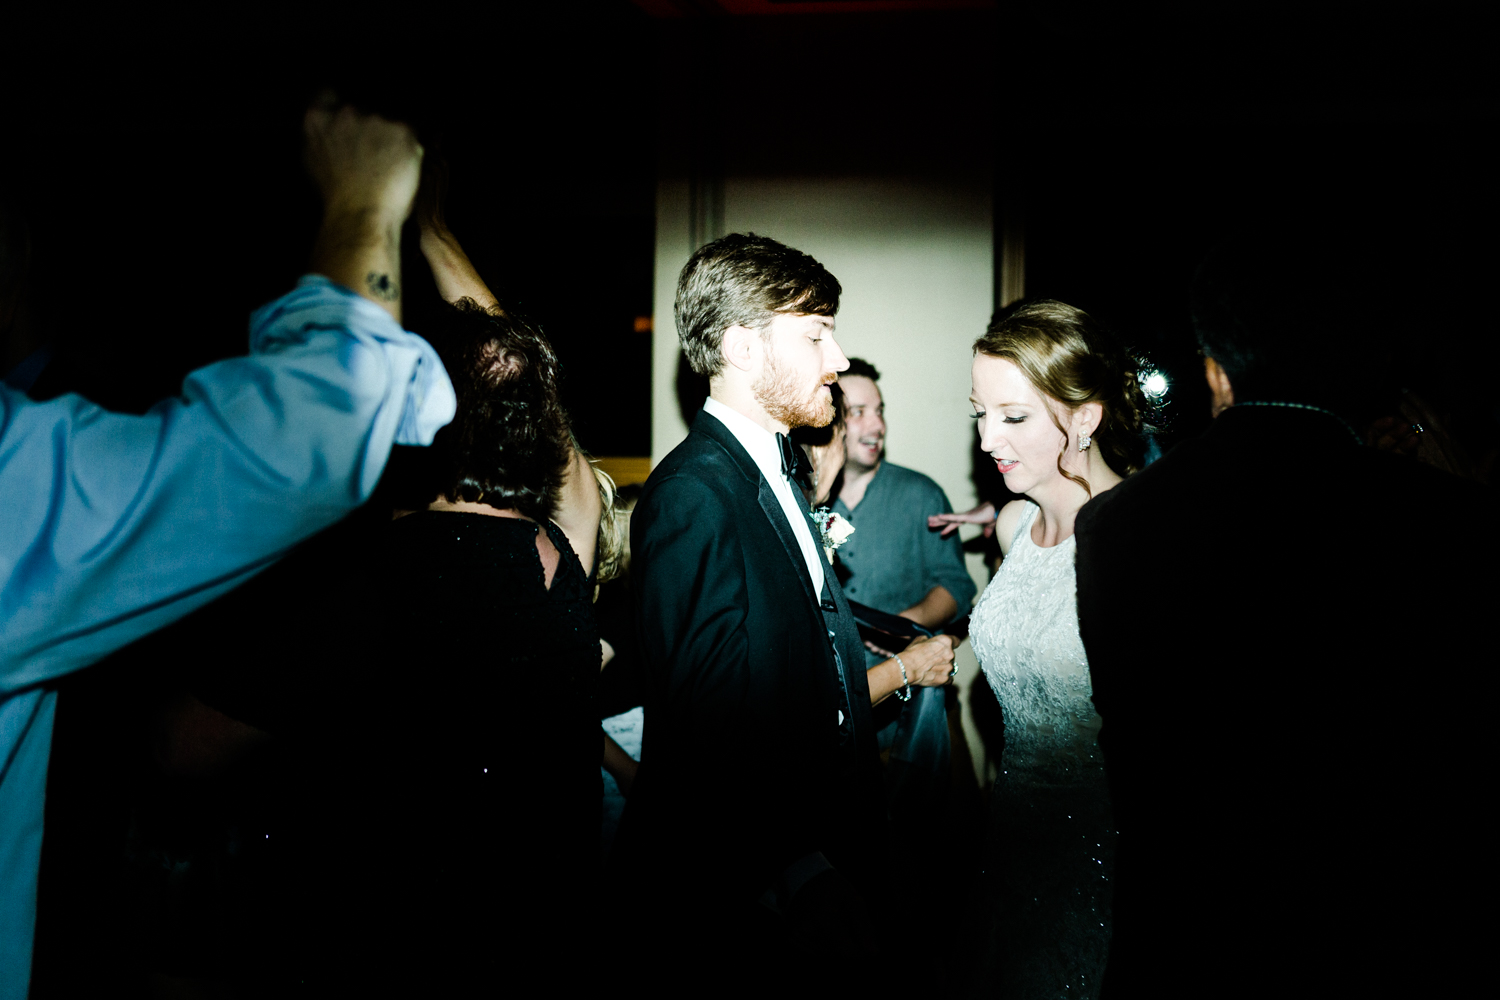 lissie_loomis_photo_nyc_brooklyn_wedding_engagement_photographer_photography-59.JPG